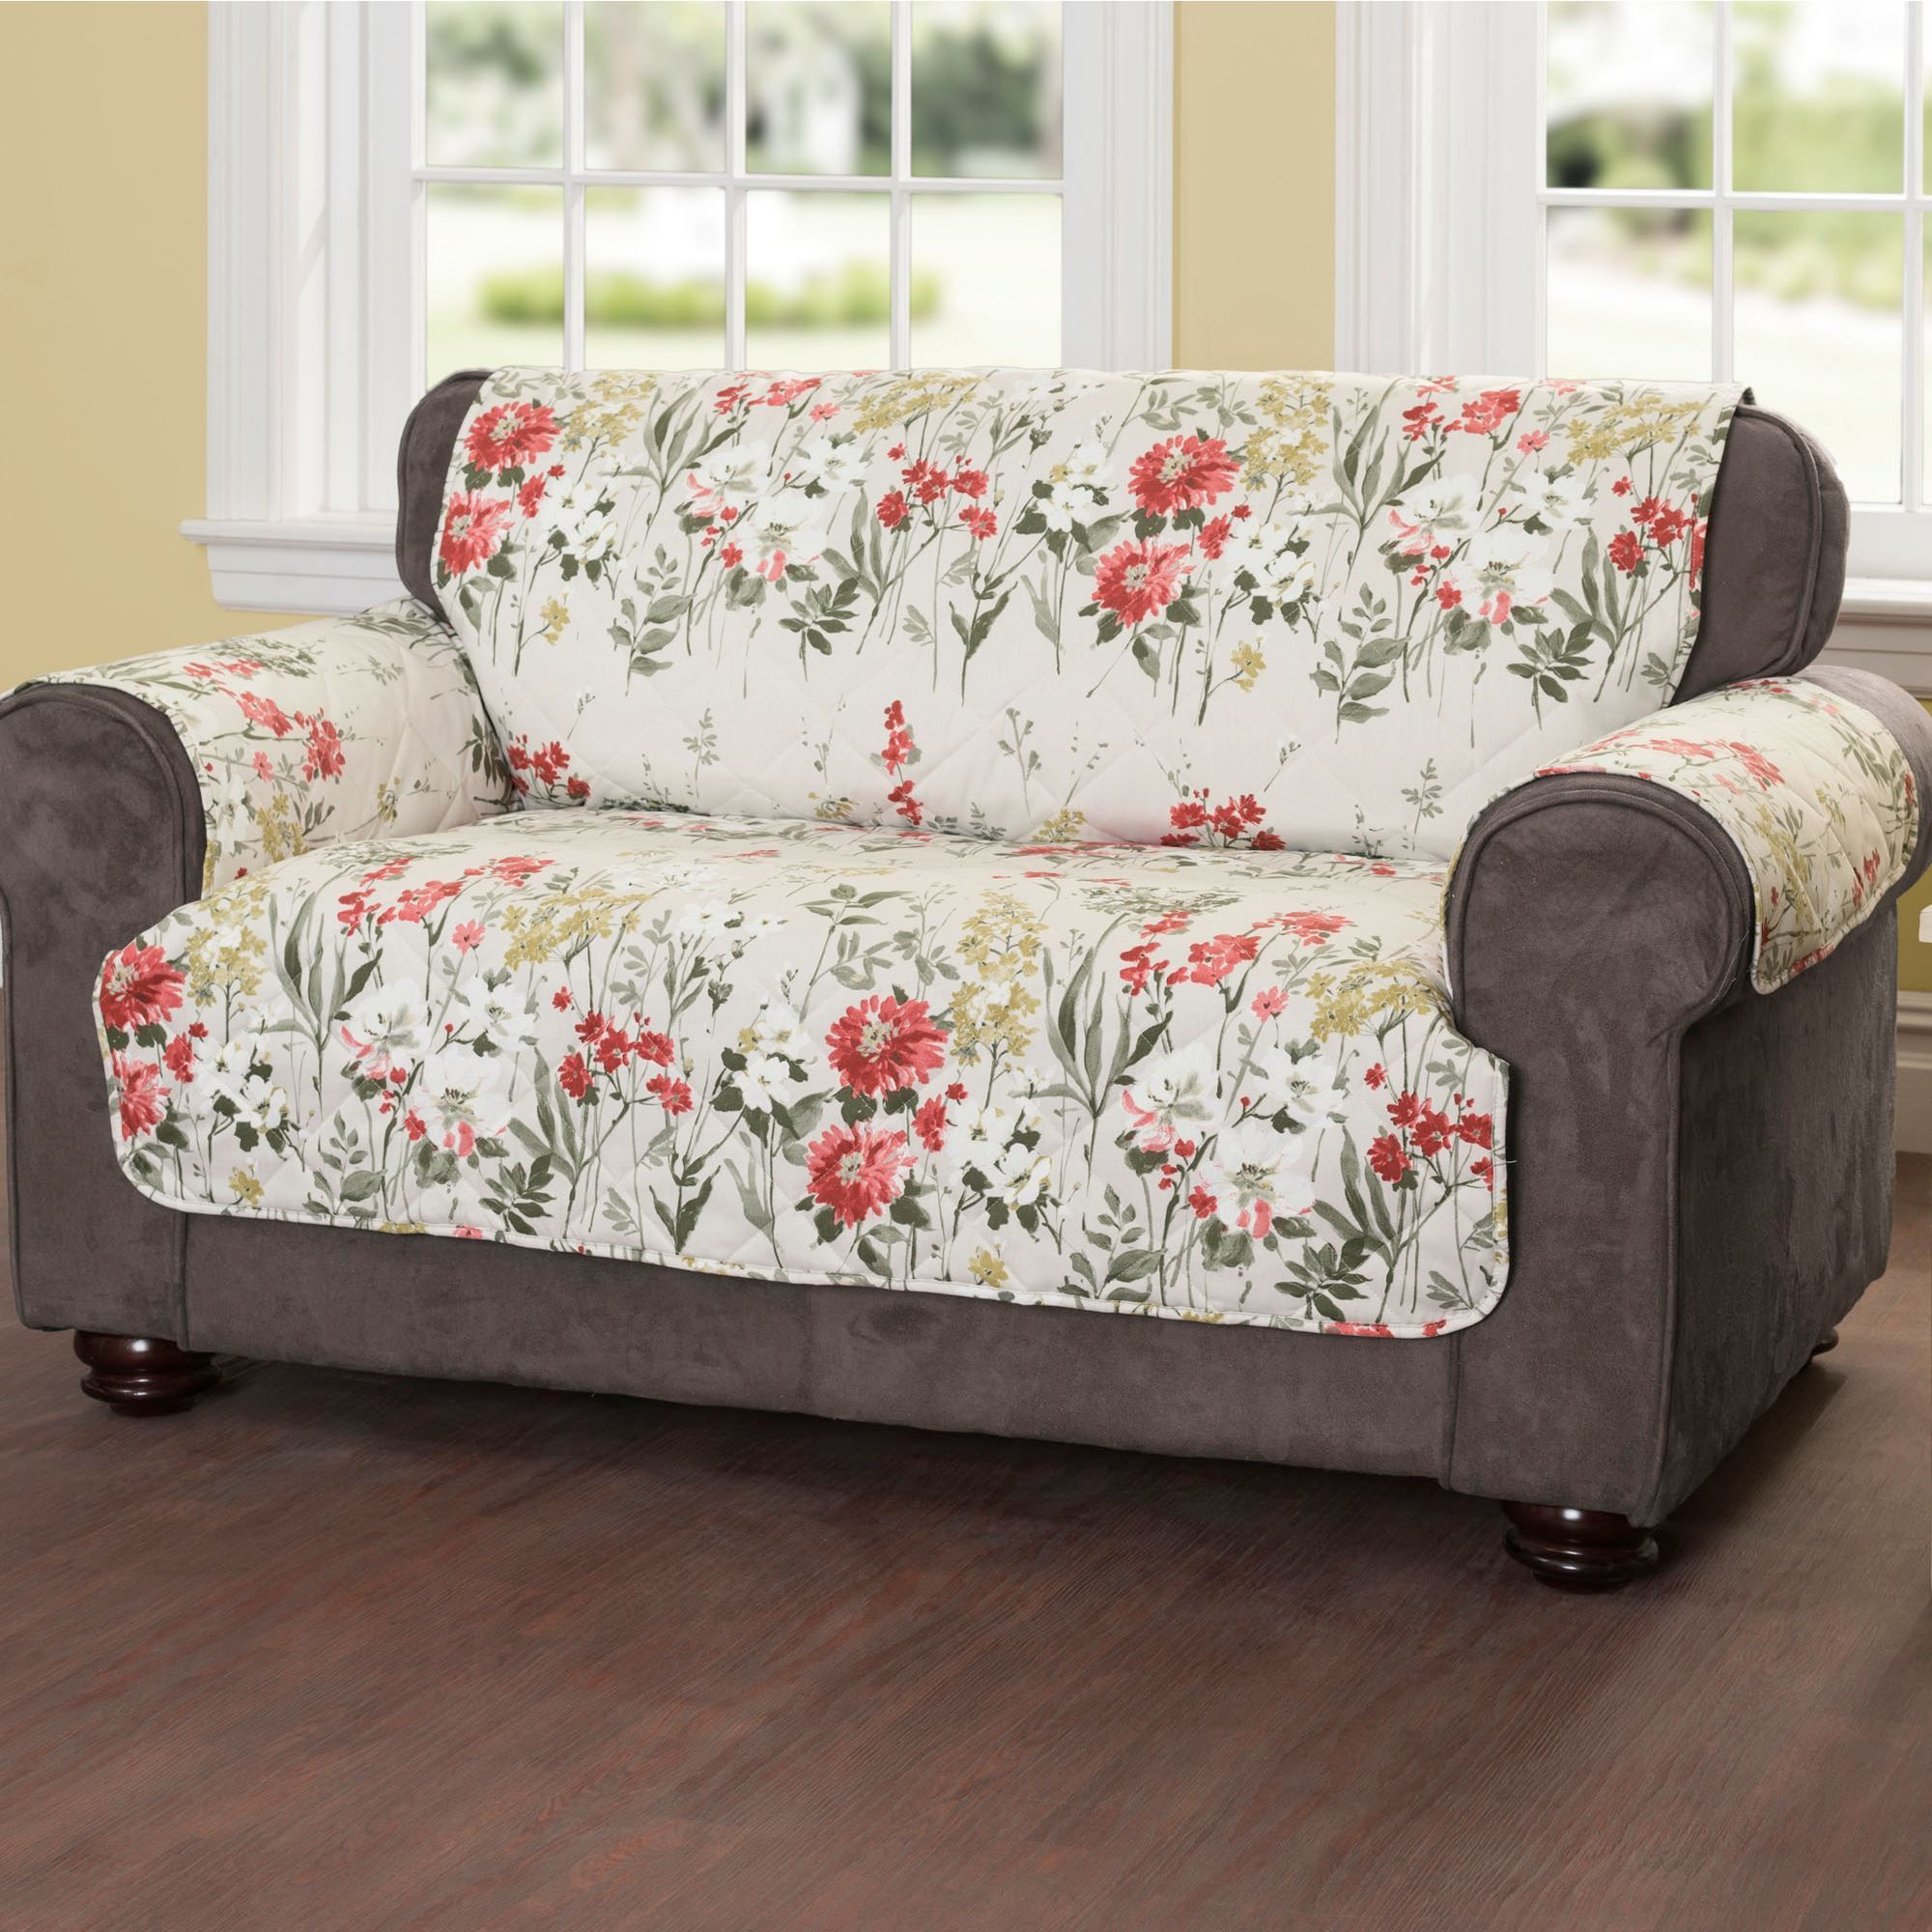 Floral Meadow Quilted Furniture Protectors Living Room